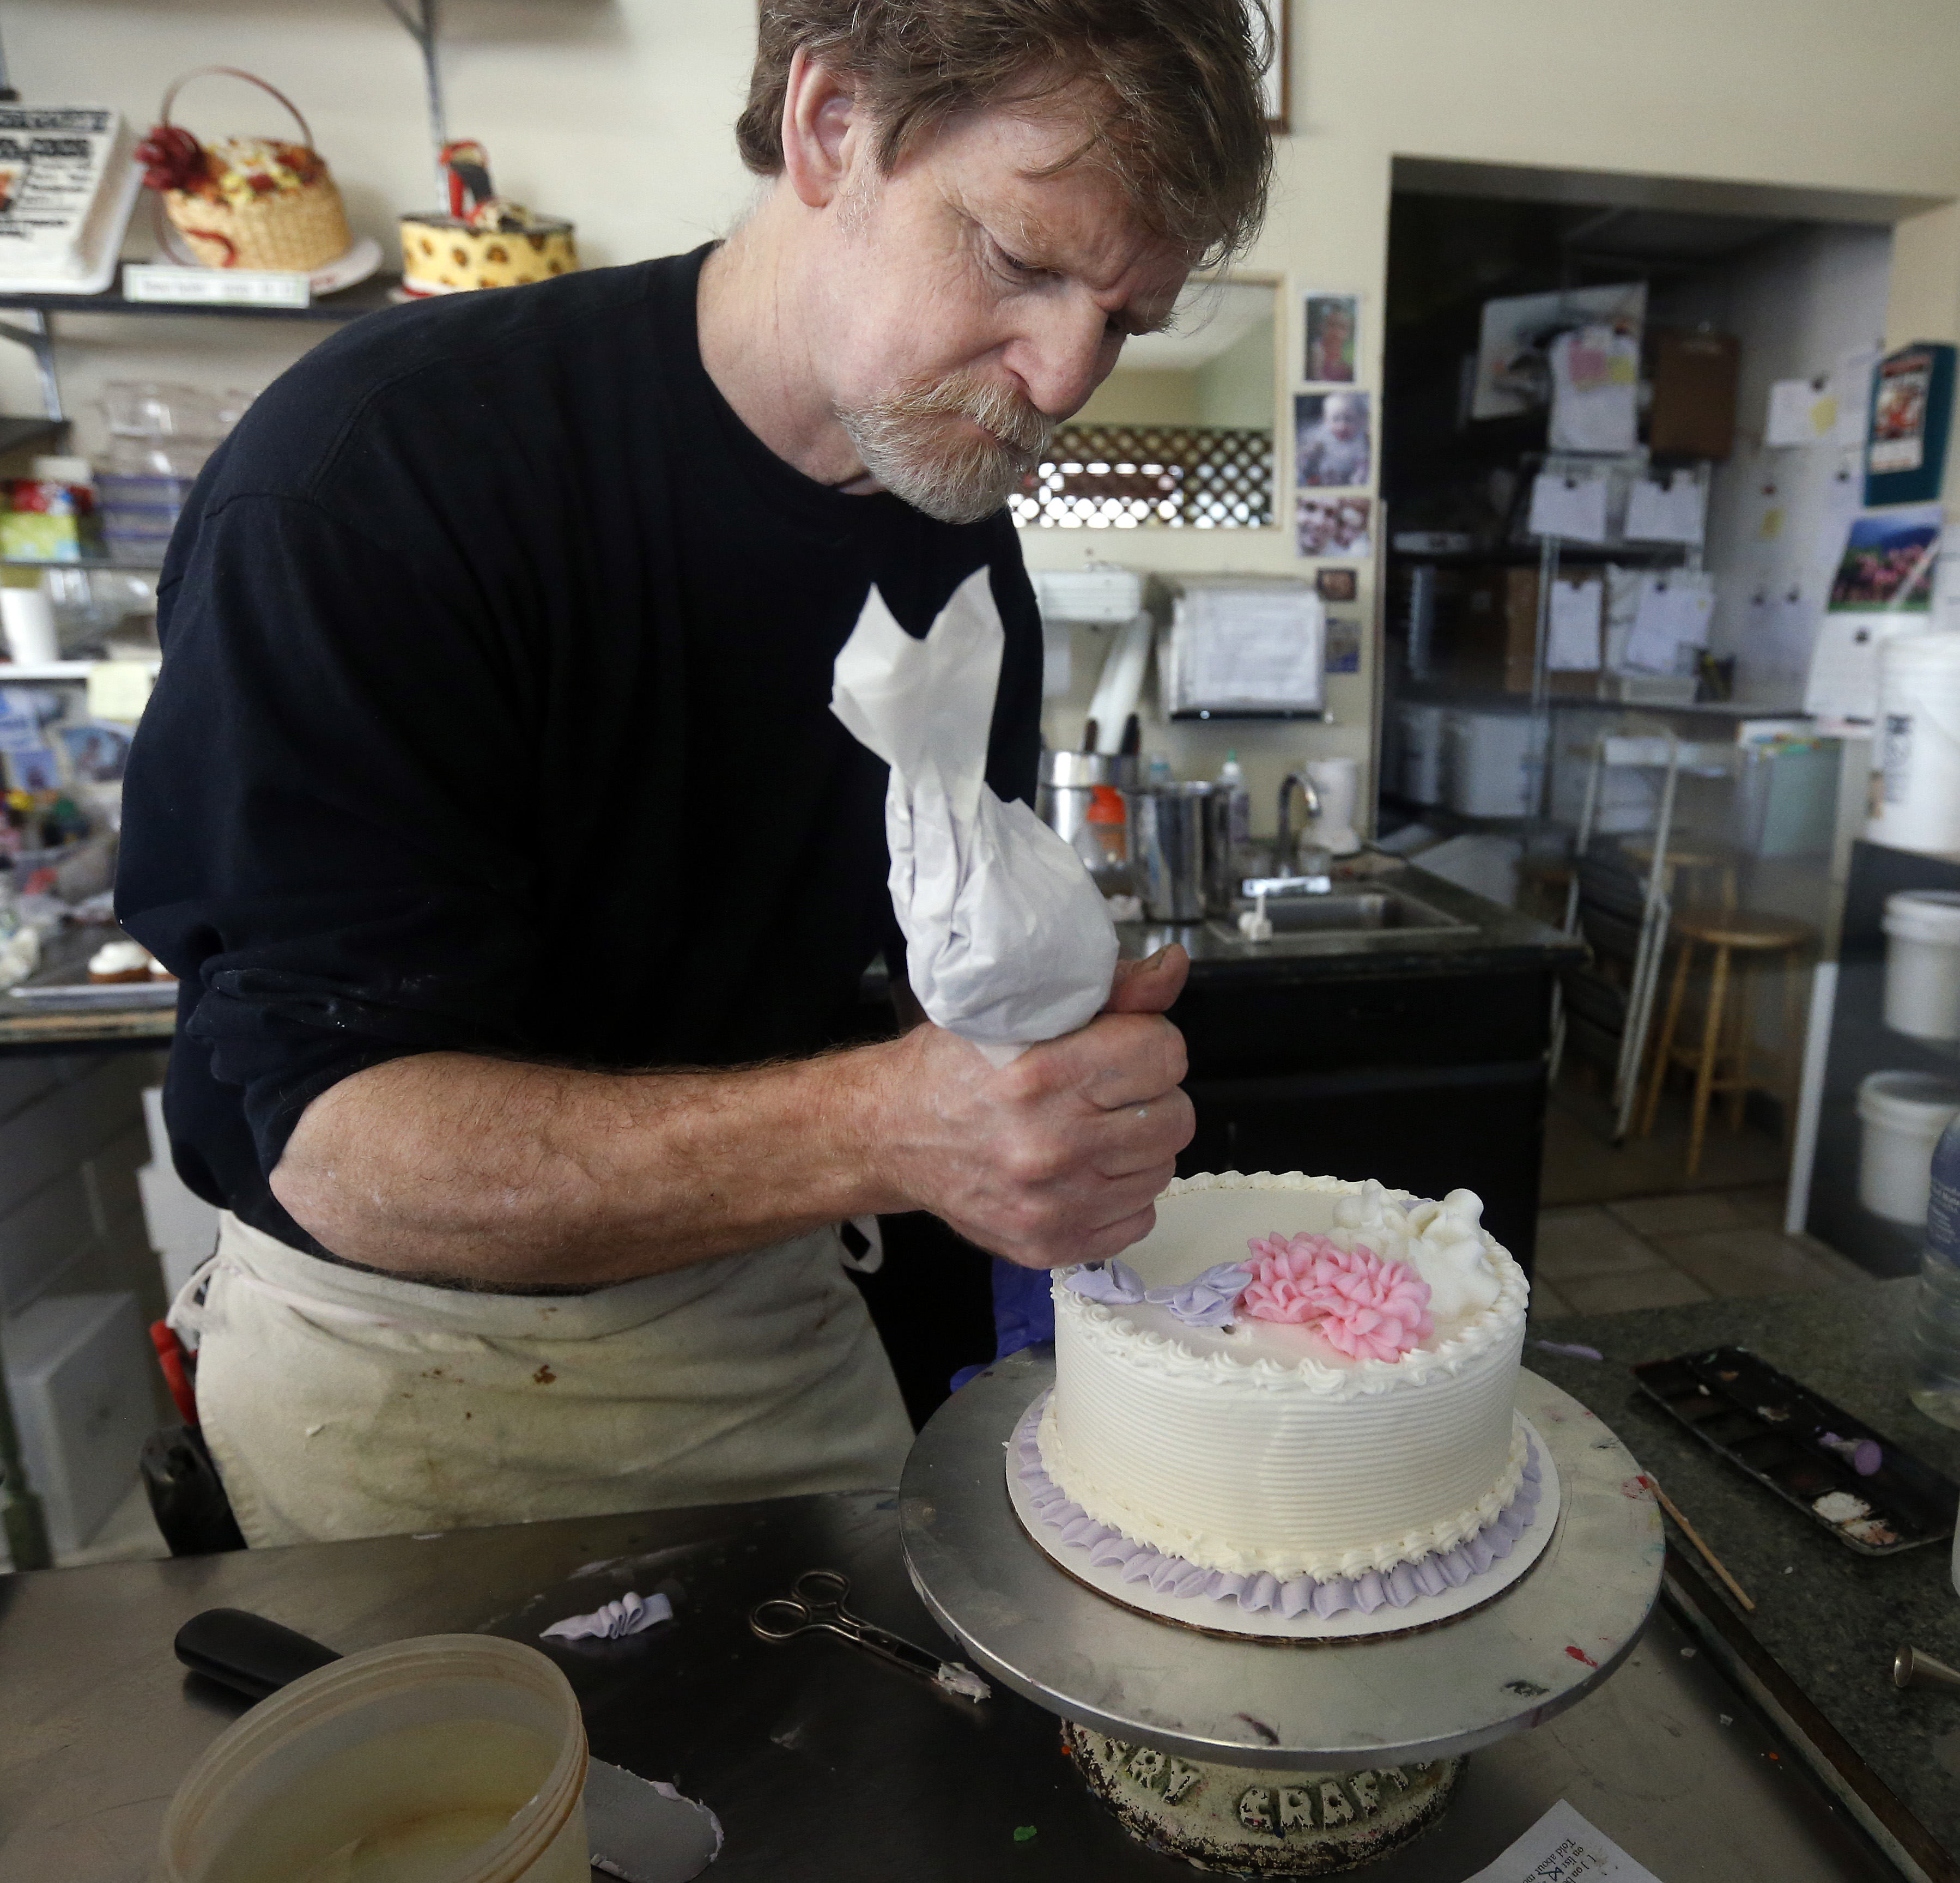 Masterpiece Cakeshop owner Jack Phillips decorates a cake inside his store, in Lakewood, Colorado, on March 14, 2010.